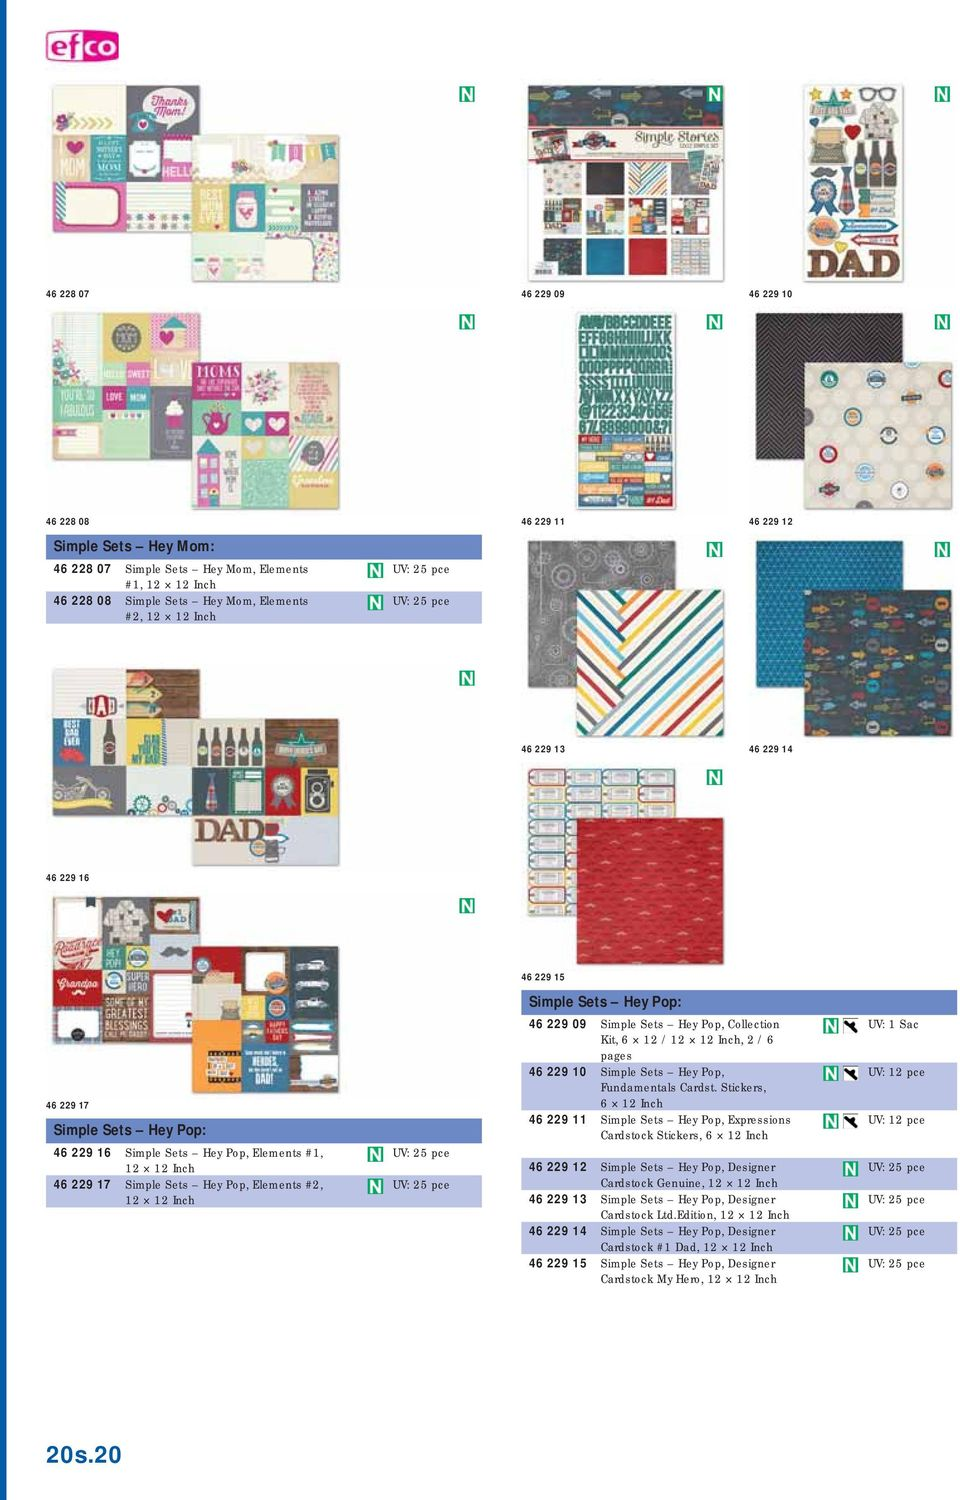 229 09 Simple Sets Hey Pop, Collection Kit, 6 12 / 12 12 Inch, 2 / 6 pages 46 229 10 Simple Sets Hey Pop, Fundamentals Cardst.